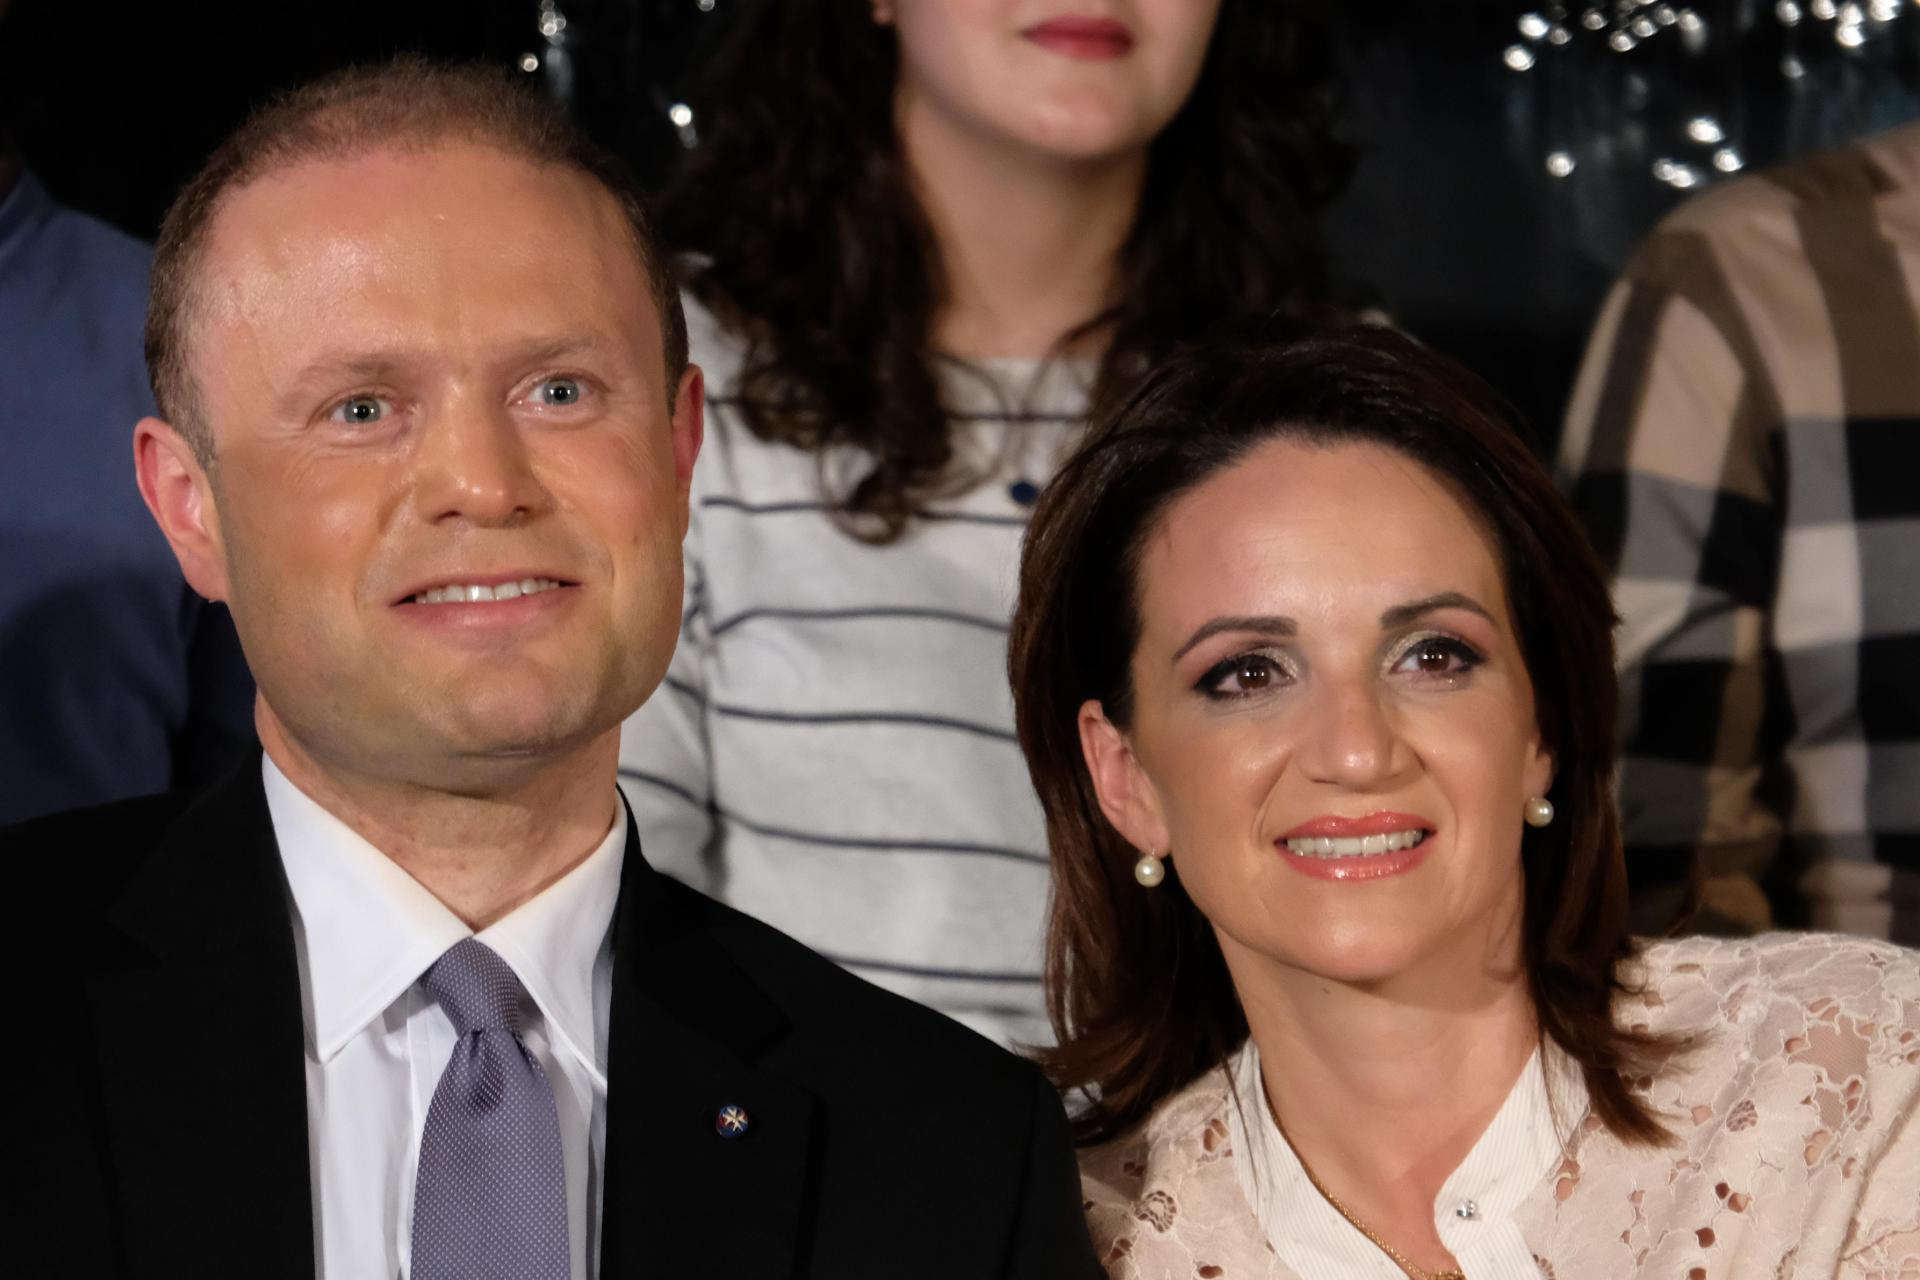 Joseph Muscat and his wife Michelle. He said the days of the Egrant claims were the 'darkest' of his premiership.